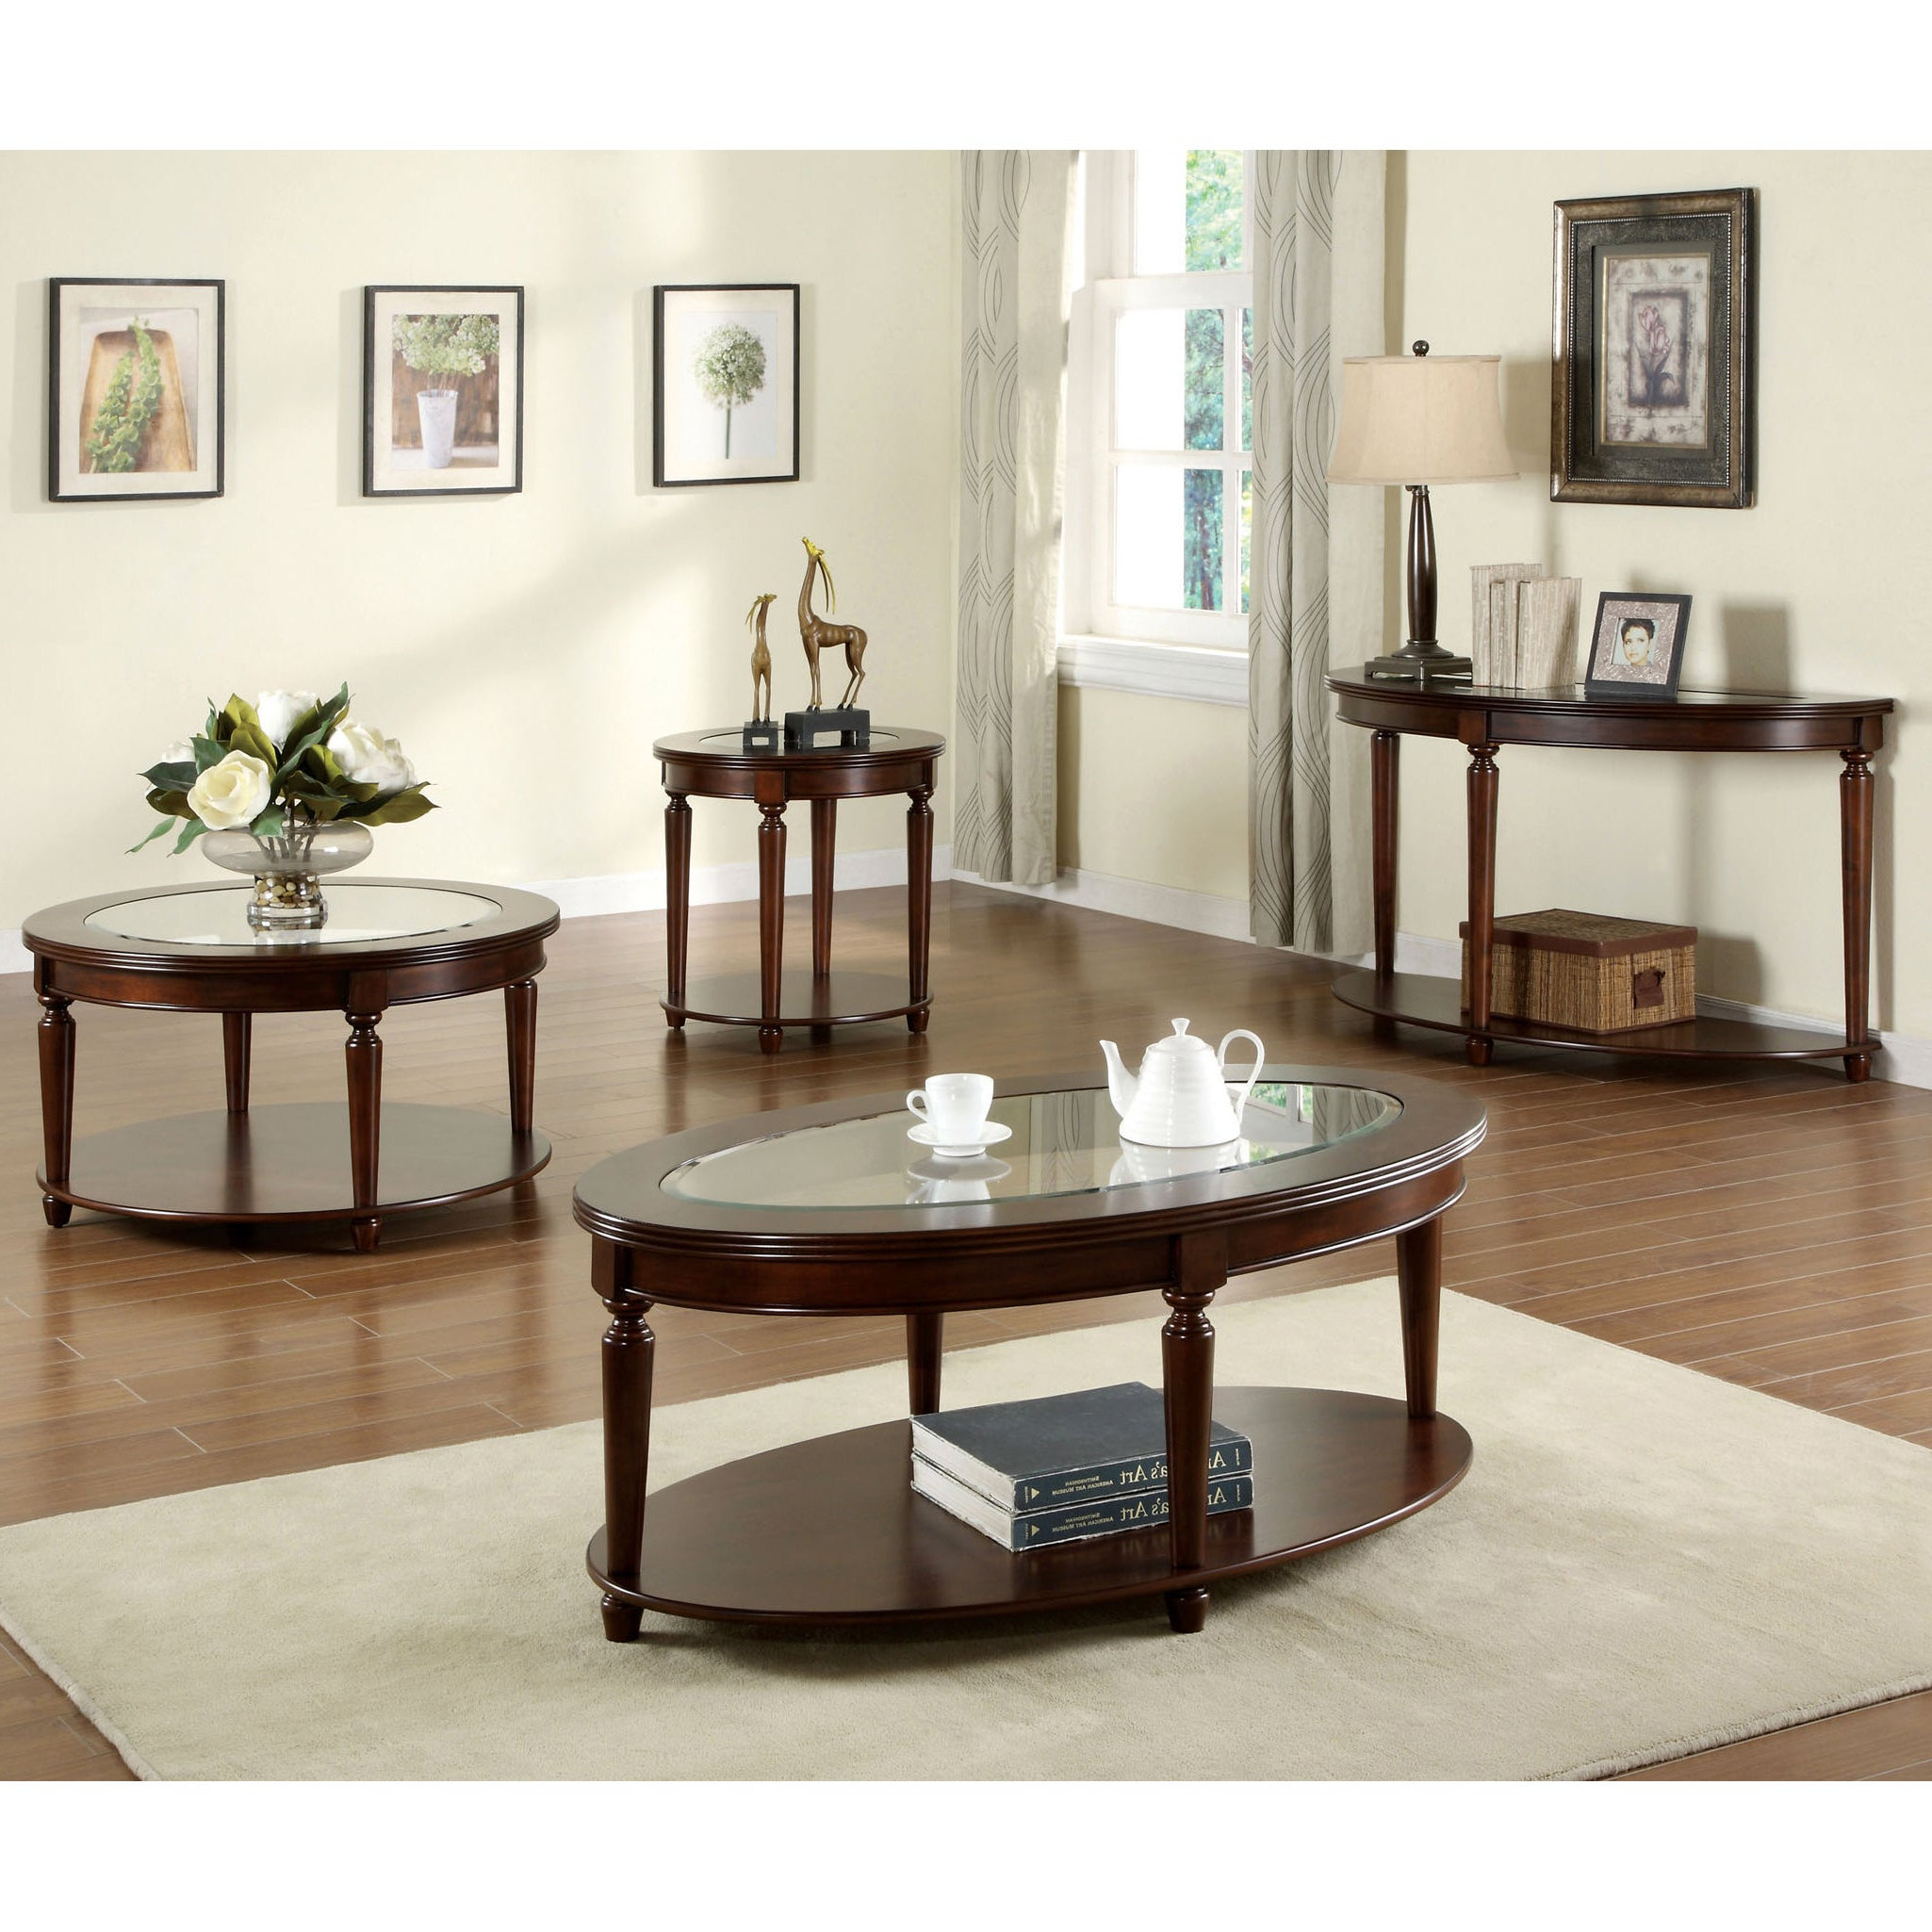 Furniture Of America Crescent Dark Cherry Glass Top Oval Coffee Table Intended For Well Liked Furniture Of America Crescent Dark Cherry Glass Top Oval Coffee Tables (View 11 of 20)